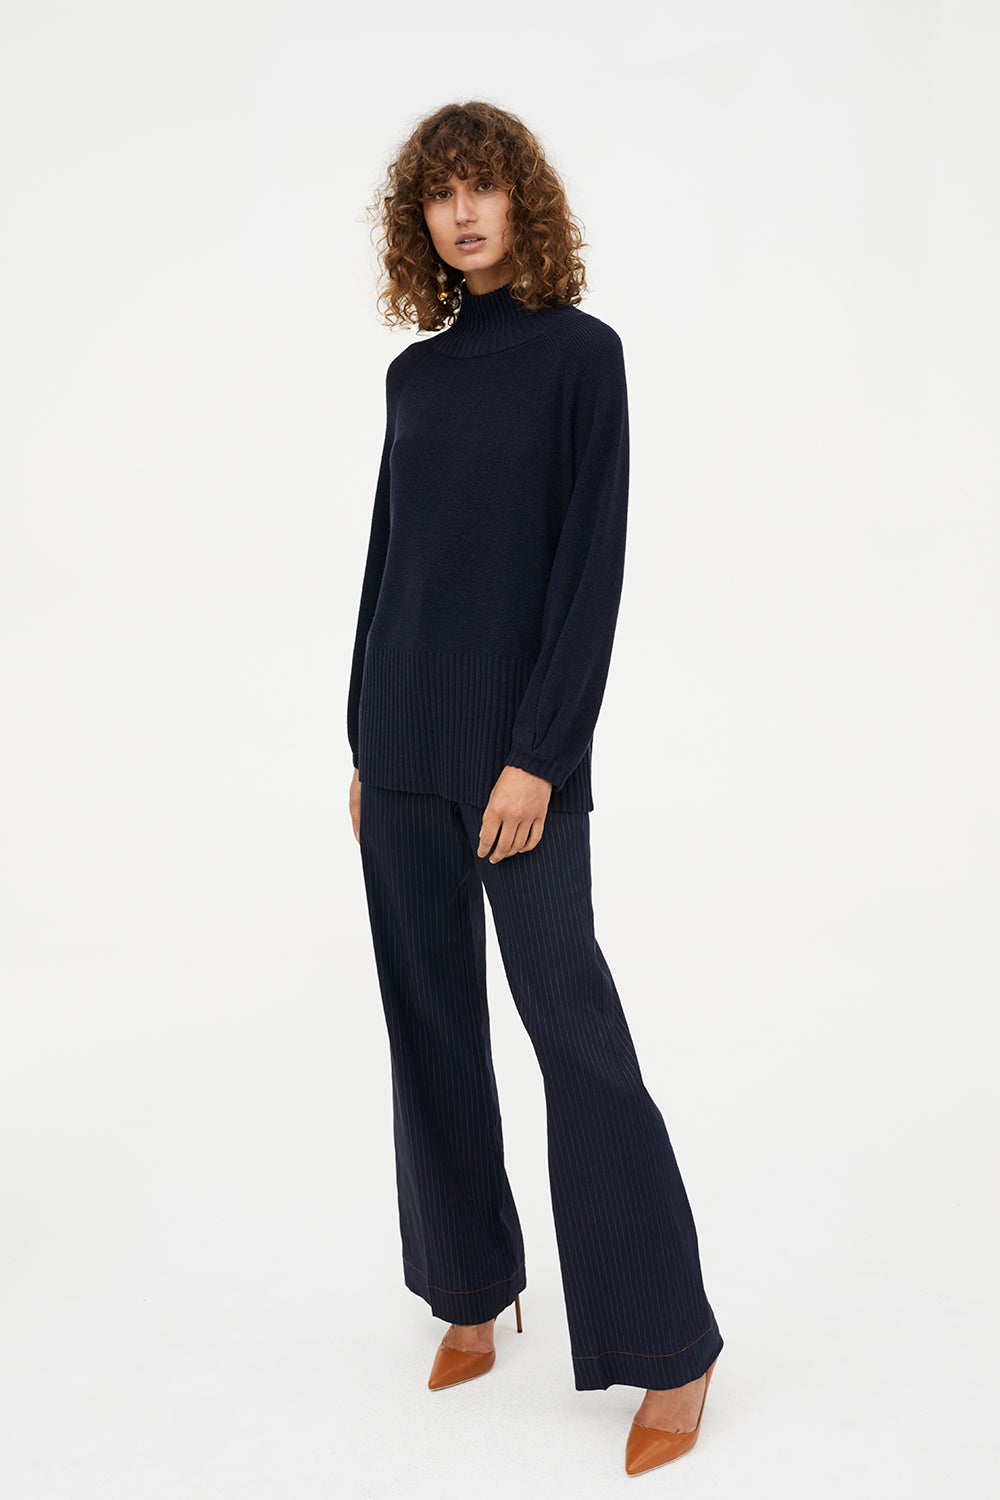 IN THE LOOP KNIT JUMPER